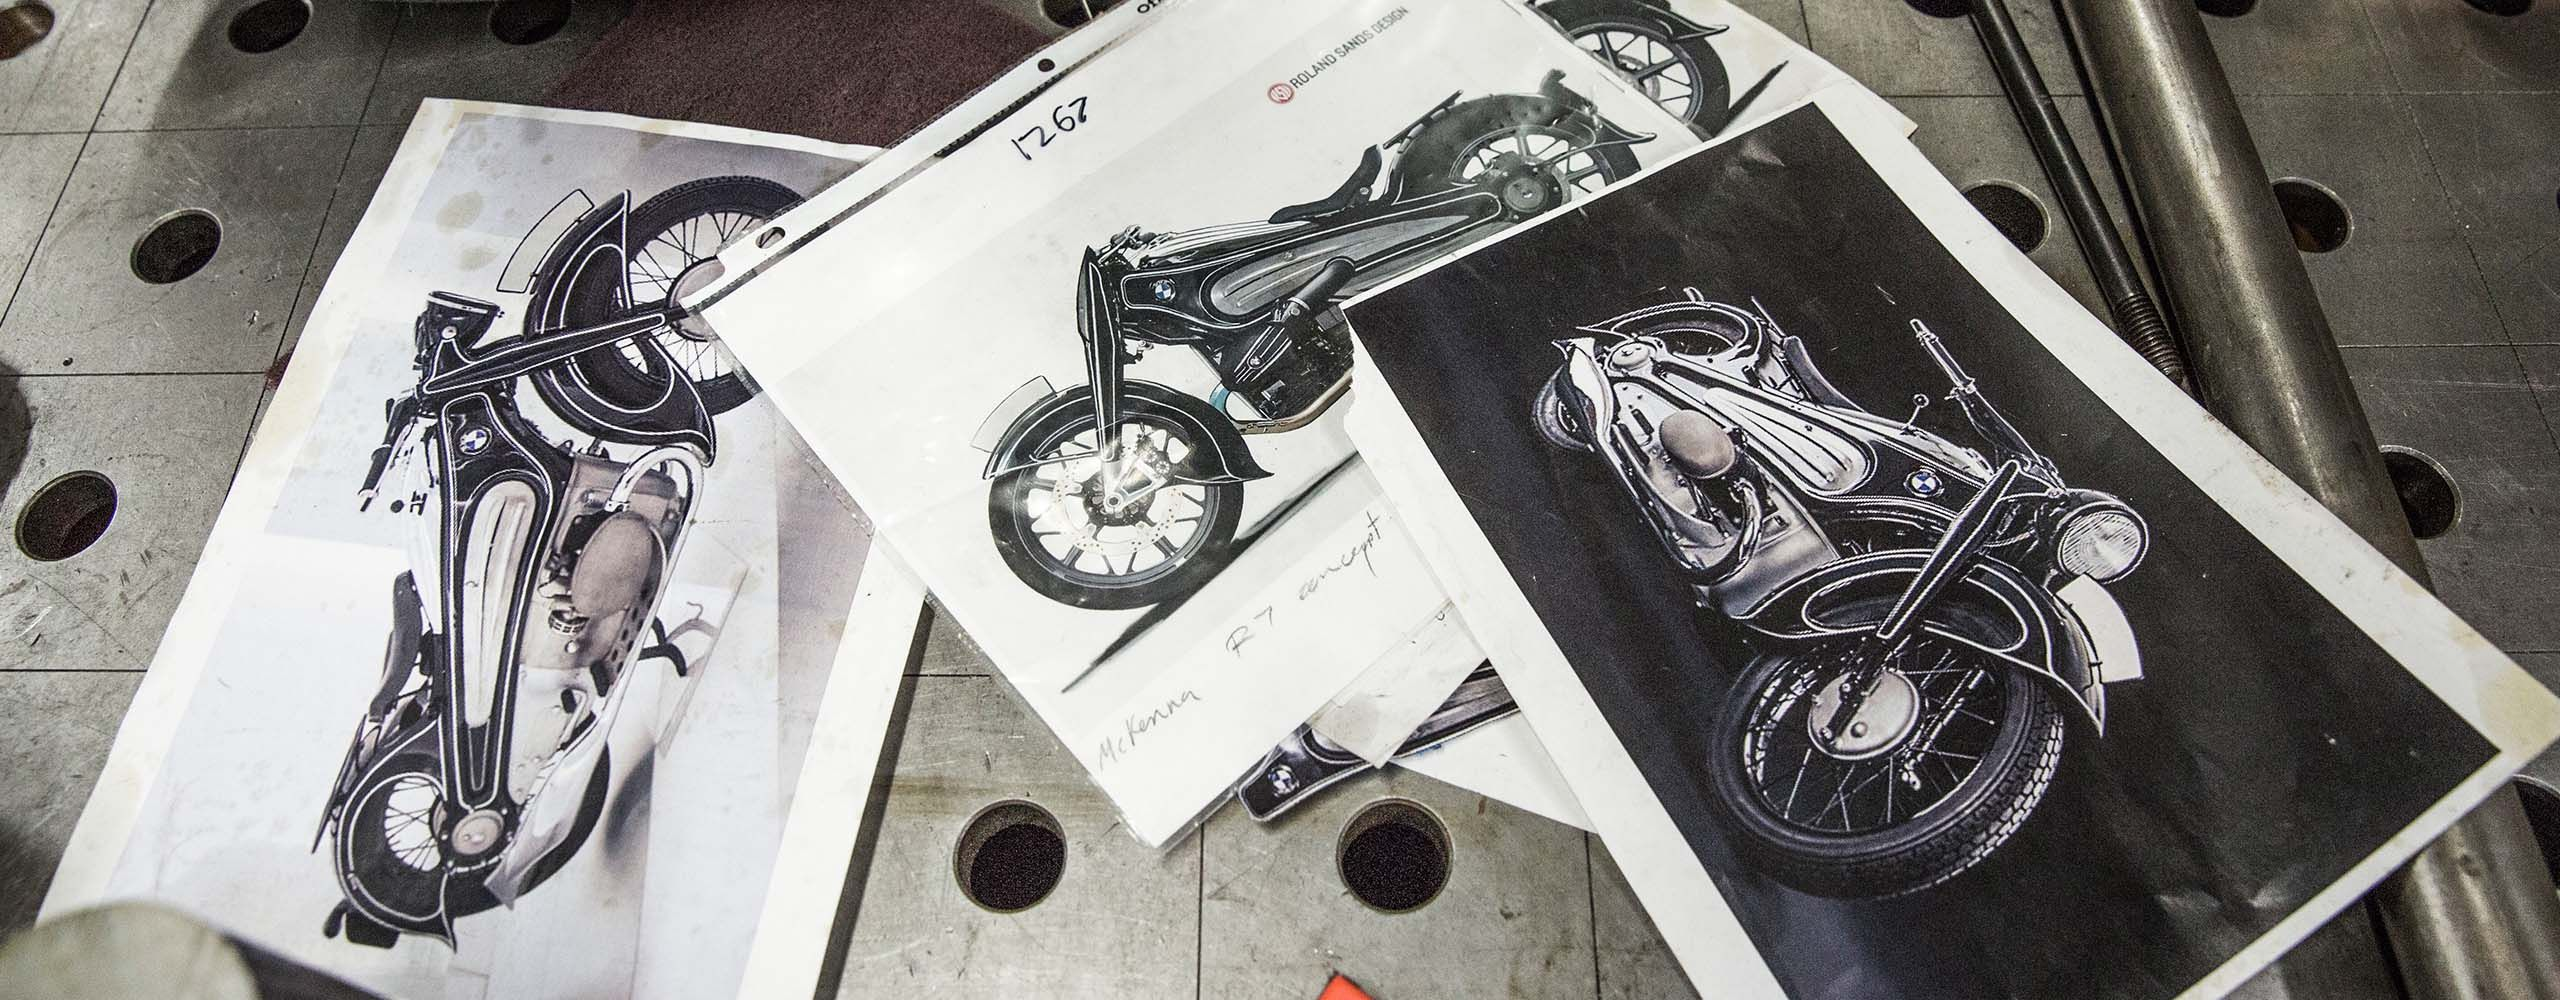 McKenna 9T Concept 7 - Blog - Motorcycle Parts and Riding Gear - Roland Sands Design - RSD